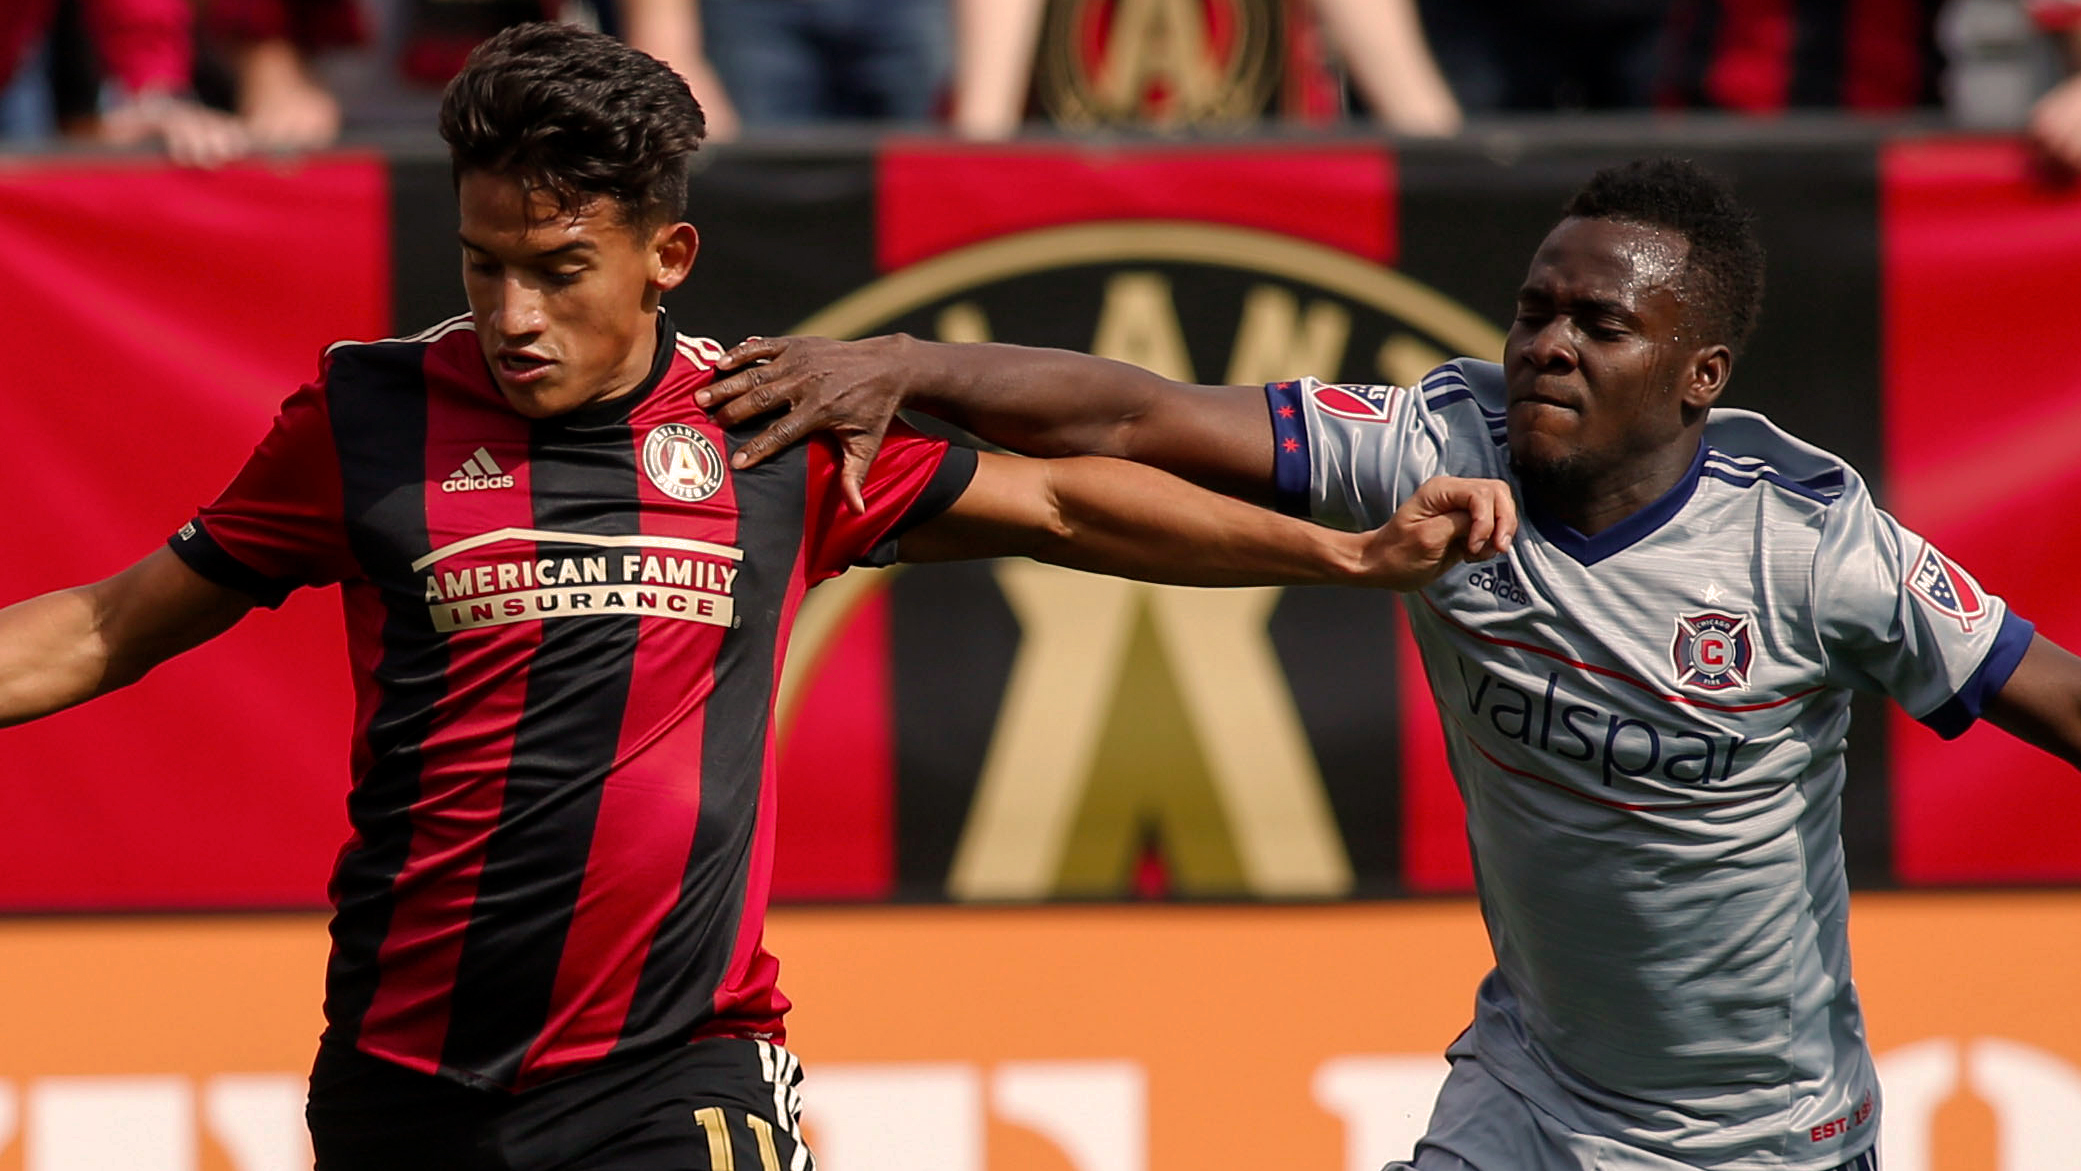 Years of hardship fueling David Accam's rise to the top in Chicago